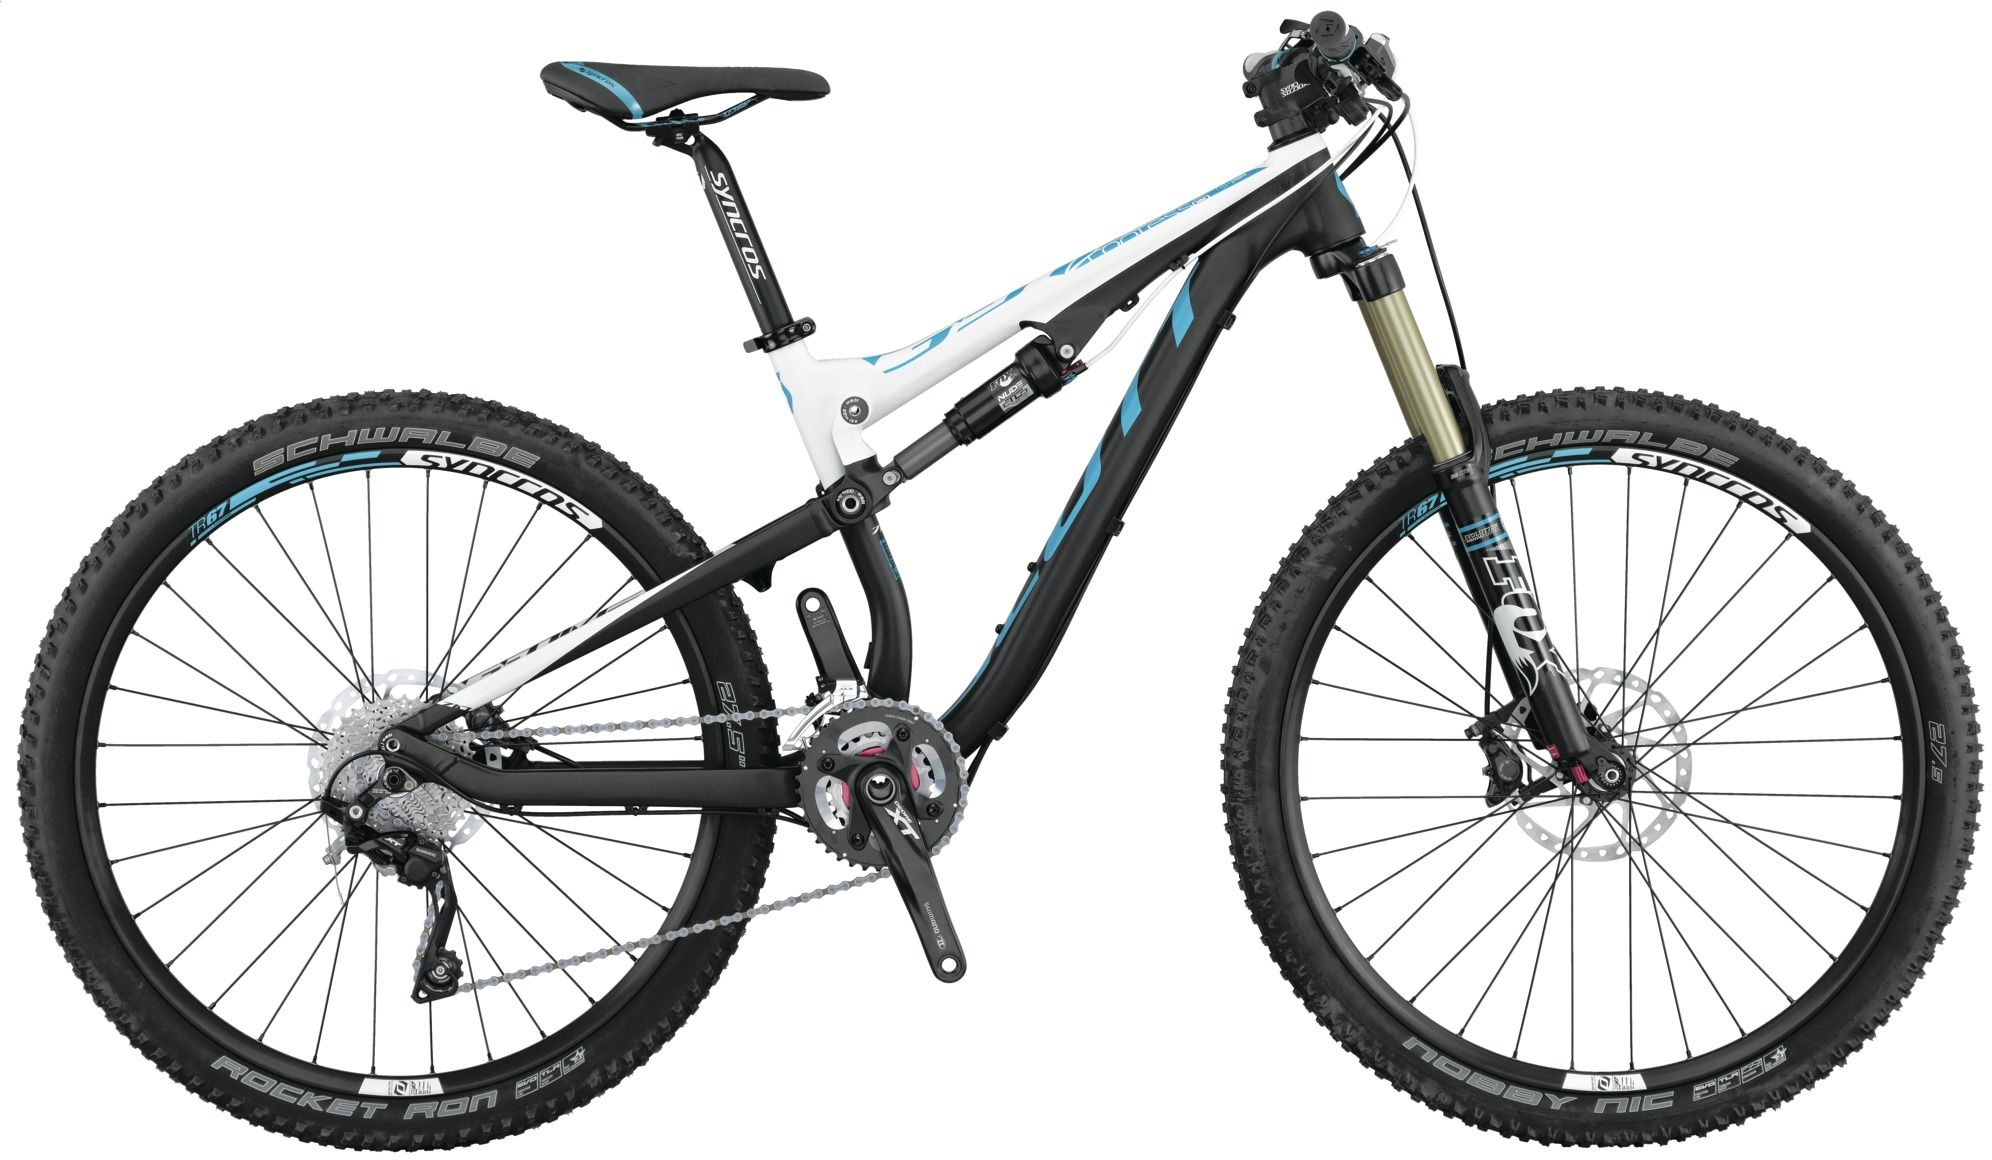 1cd68a73970 Scott Contessa Genius 710 2015 review - The Bike List